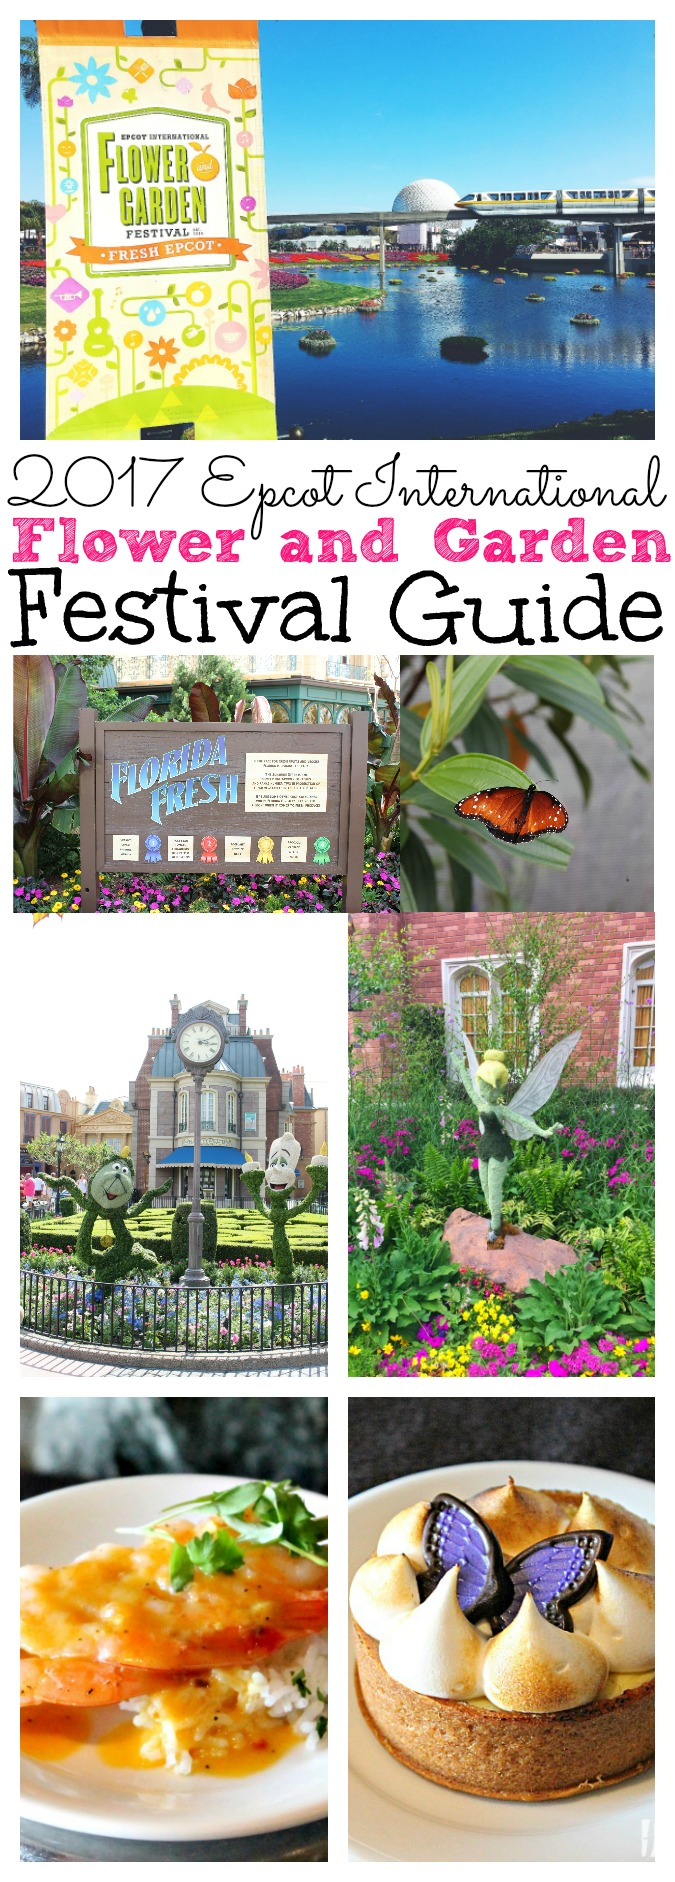 2017 Epcot International Flower and Garden Festival Guide #FreshEpcot - simplytodaylife.com